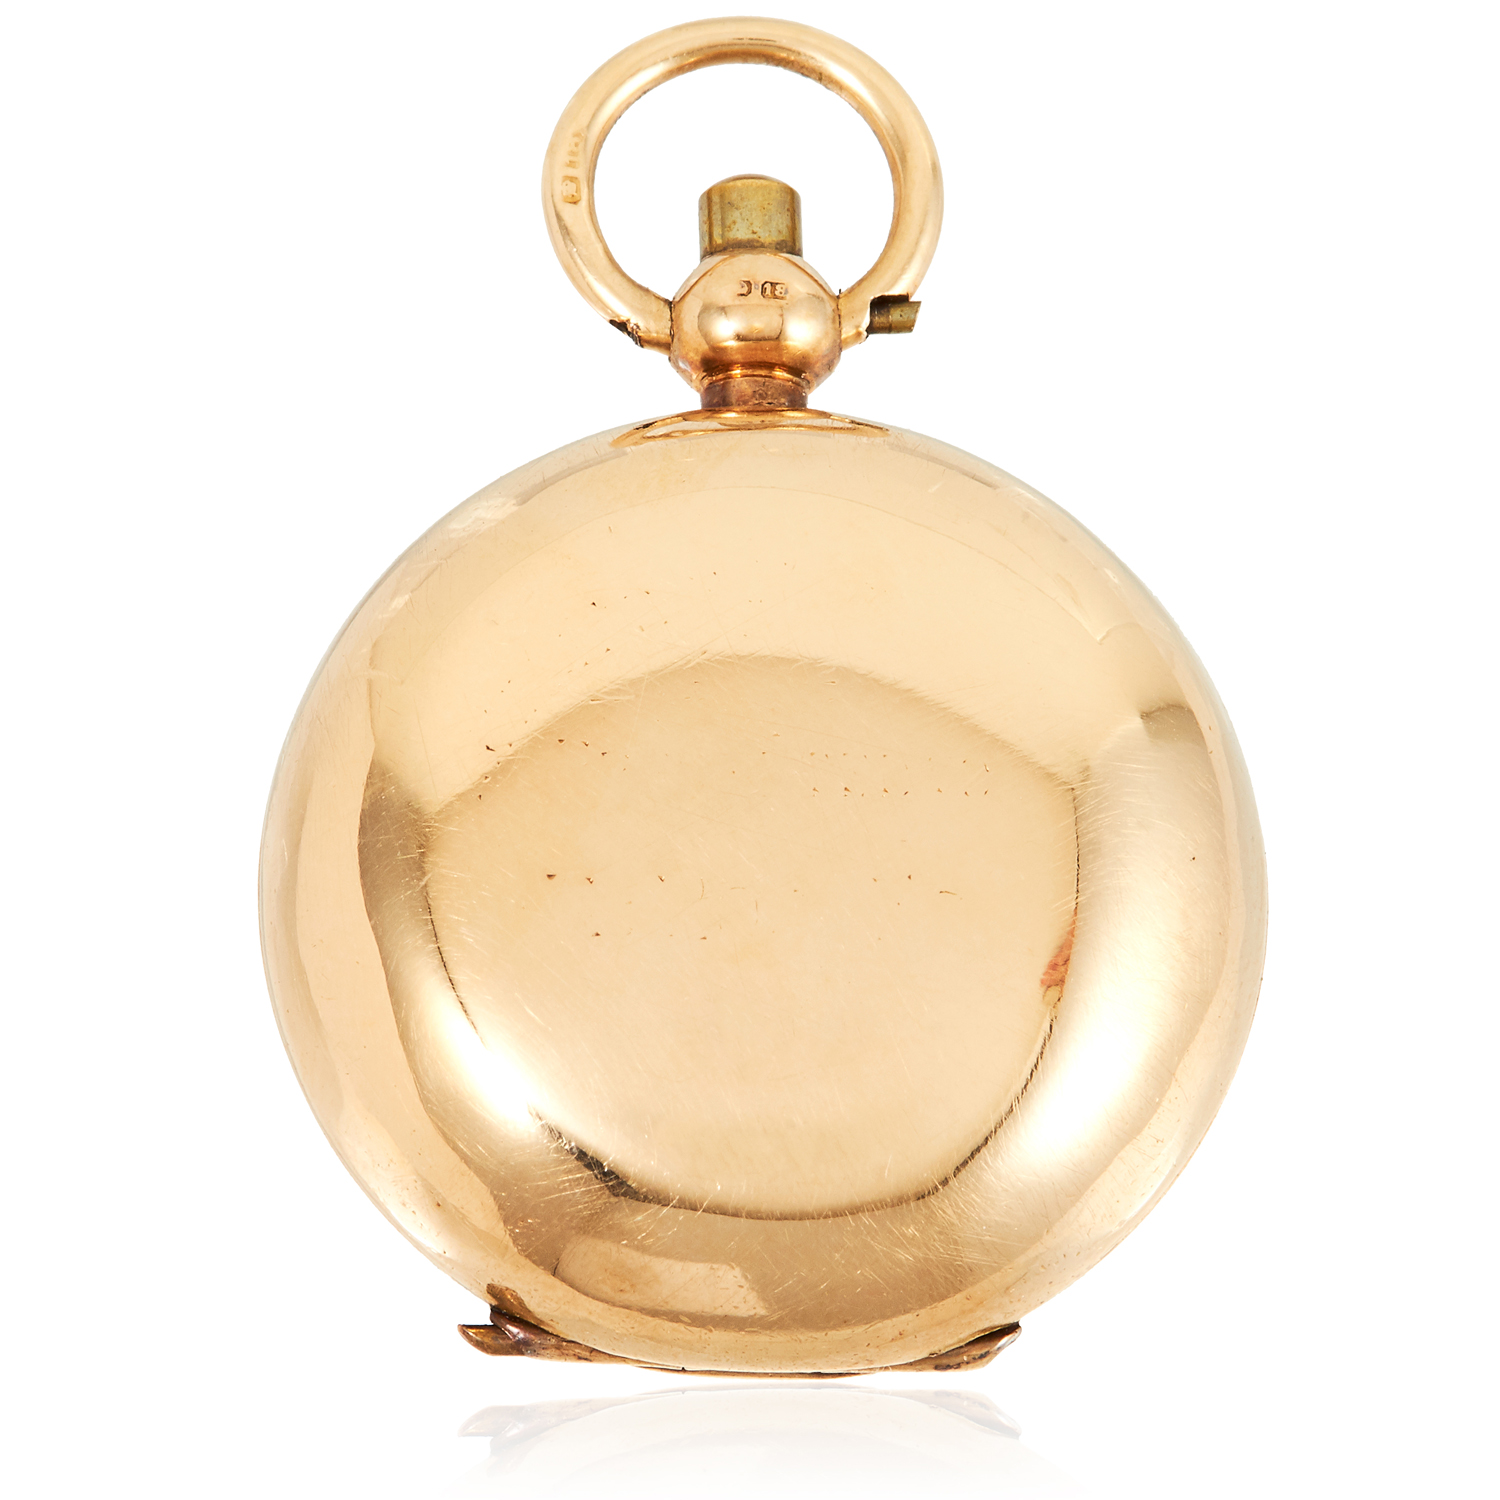 AN ANTIQUE 18 CARAT GOLD SOVEREIGN HOLDER, EARLY 20TH CENTURY circular form, hinged lid, full